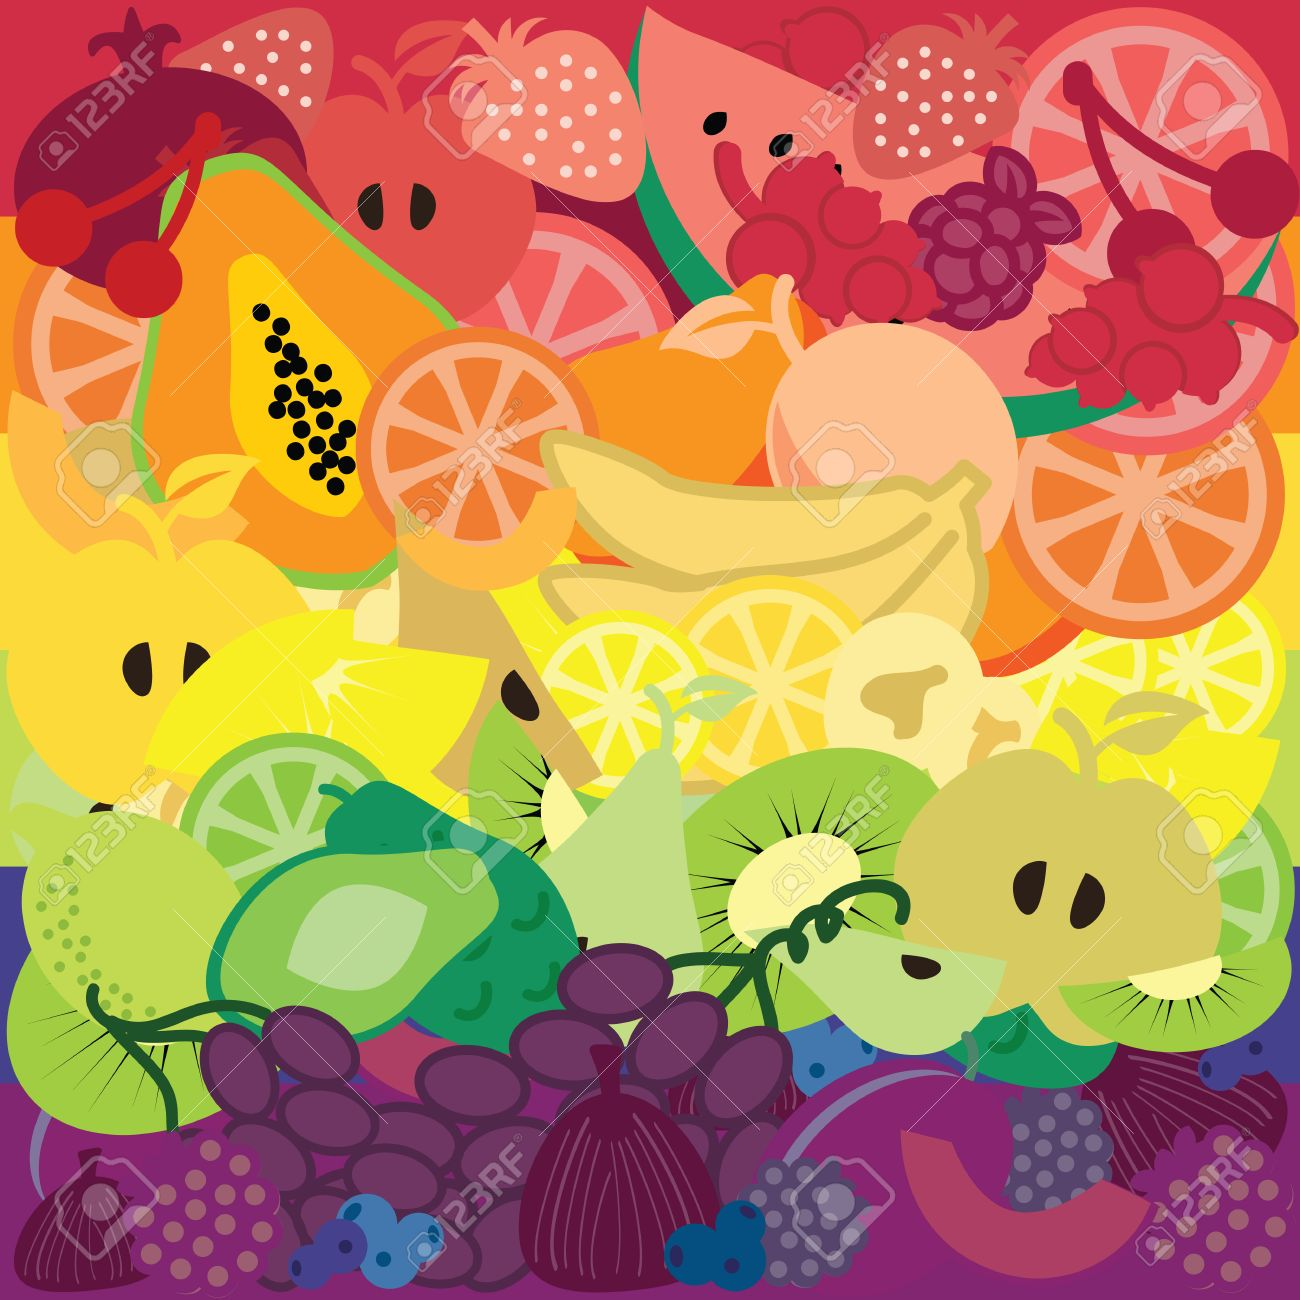 Vector Illustration Fruits Devided By Color And Arranged In Royalty Free Cliparts Vectors And Stock Illustration Image 61193489